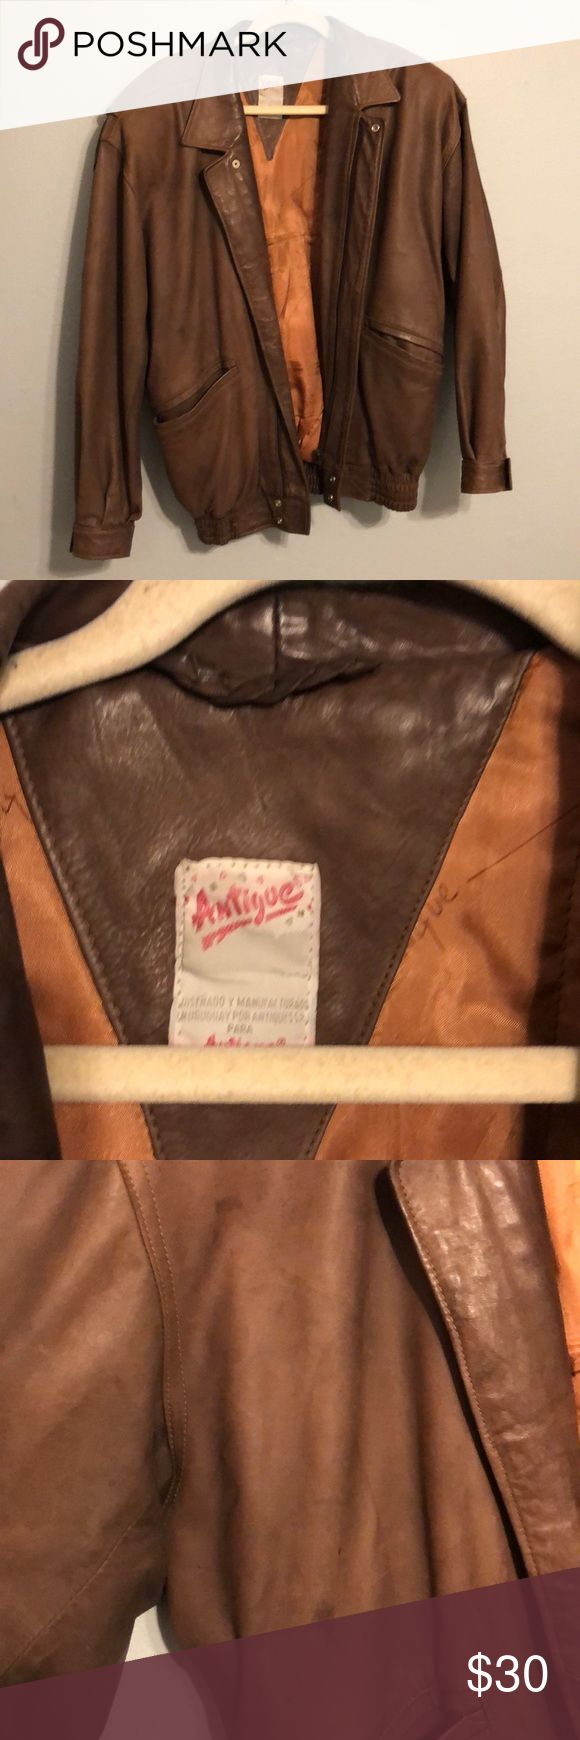 Vintage brown leather jacket This brown real leather jacket has been very well loved. Super soft and worn in has a few spots on front as pictured but still very wearable. Elastic around waist, front and inner pockets. Shoulder pads and zip front closure. Very top gun style! antigue Jackets & Coats